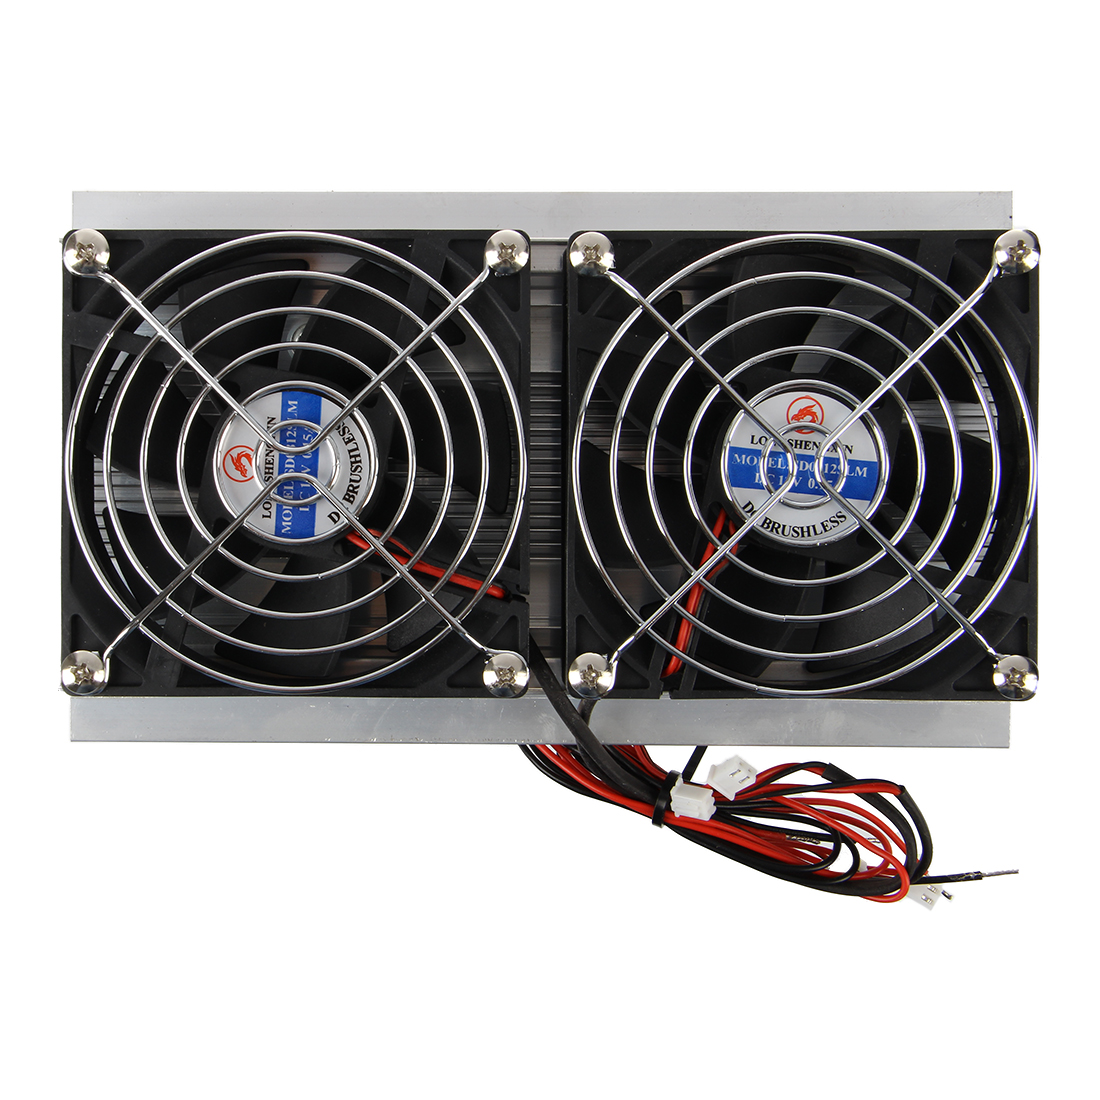 Thermoelectric Peltier Refrigeration Cooling System Kit Cooler Double Fan DIY freeshipping tec2 25408 70w 30 degree double deck thermoelectric cooler cooling peltier